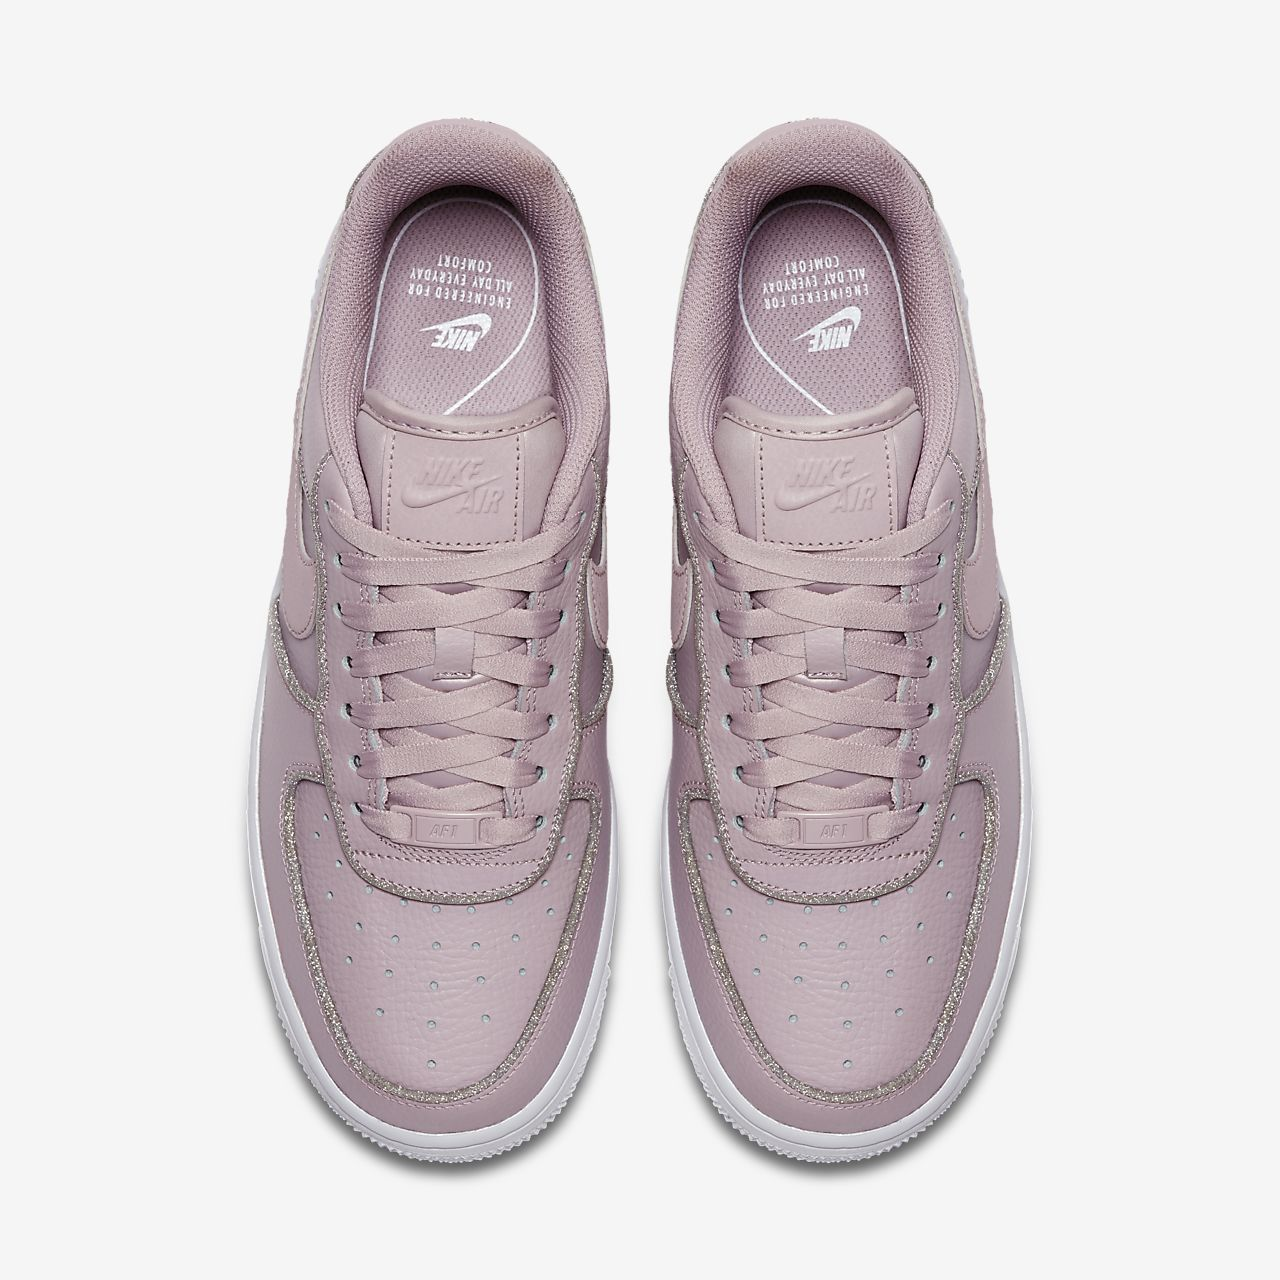 new concept 87a6b d6a63 ... Calzado para mujer Nike Air Force 1 Low Glitter